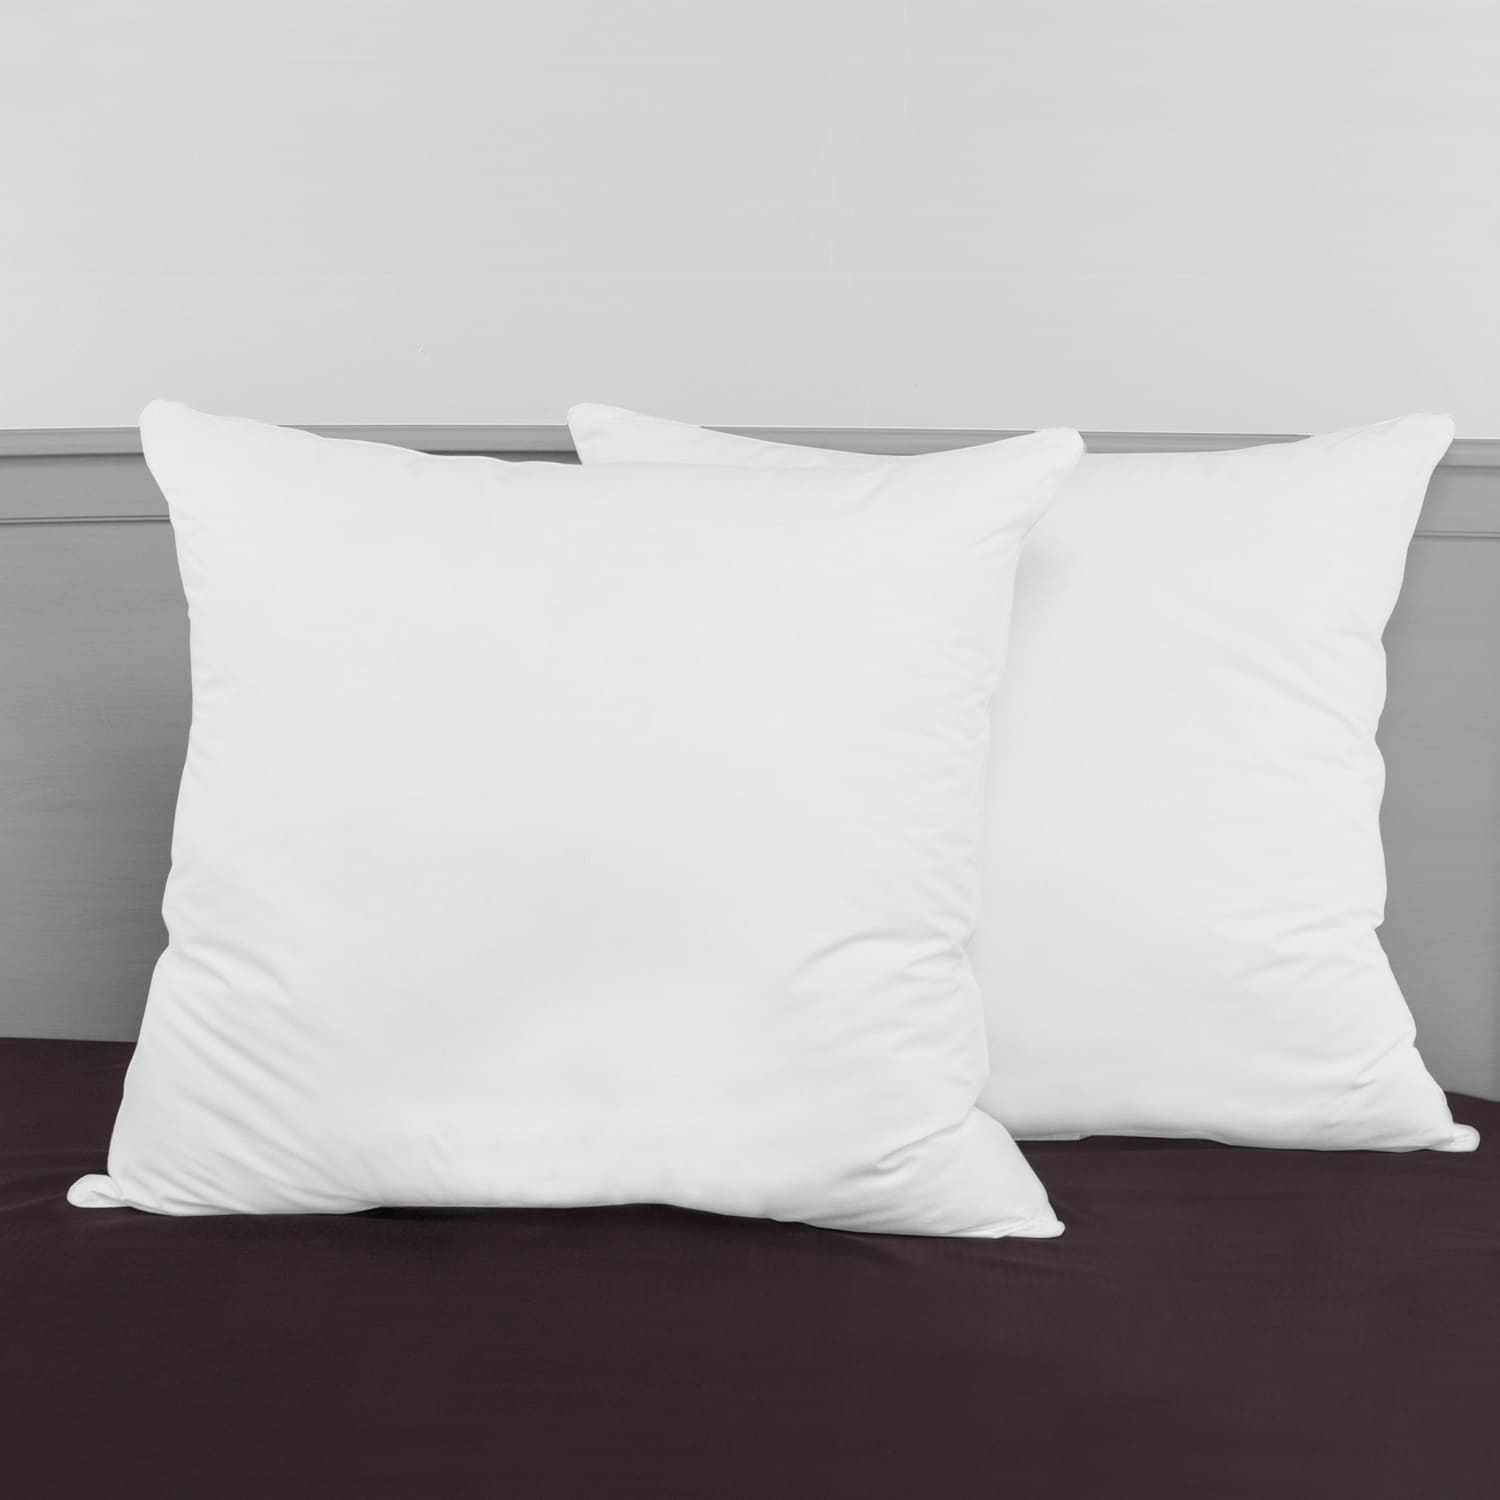 Swisslux Decorator 28 Inch Euro Square Pillows Set Of 2 Free Shipping On Orders Over 45 4493223